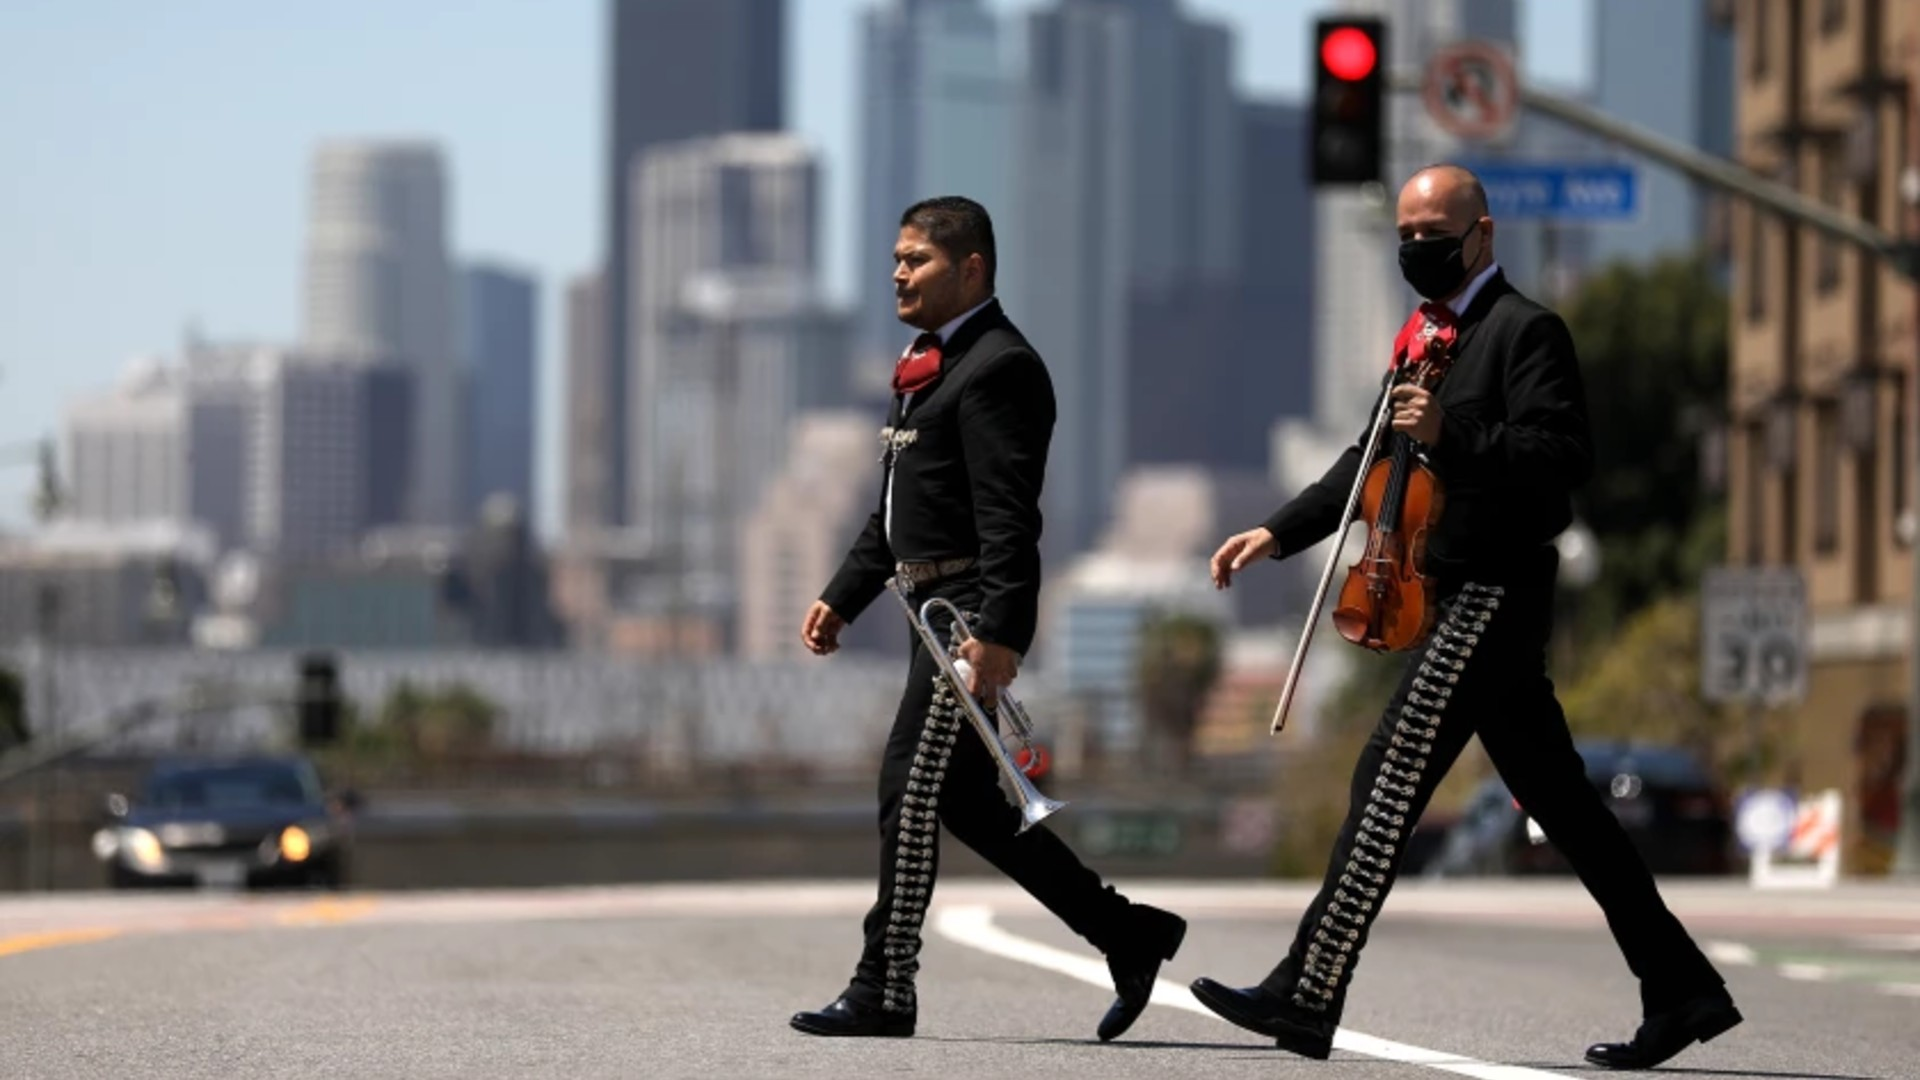 Mariachis cross 1st Street in Boyle Heights. In newly released U.S. census figures, the neighborhood recorded a decline in population, but downtown to the west saw a huge increase.(Gary Coronado / Los Angeles Times)